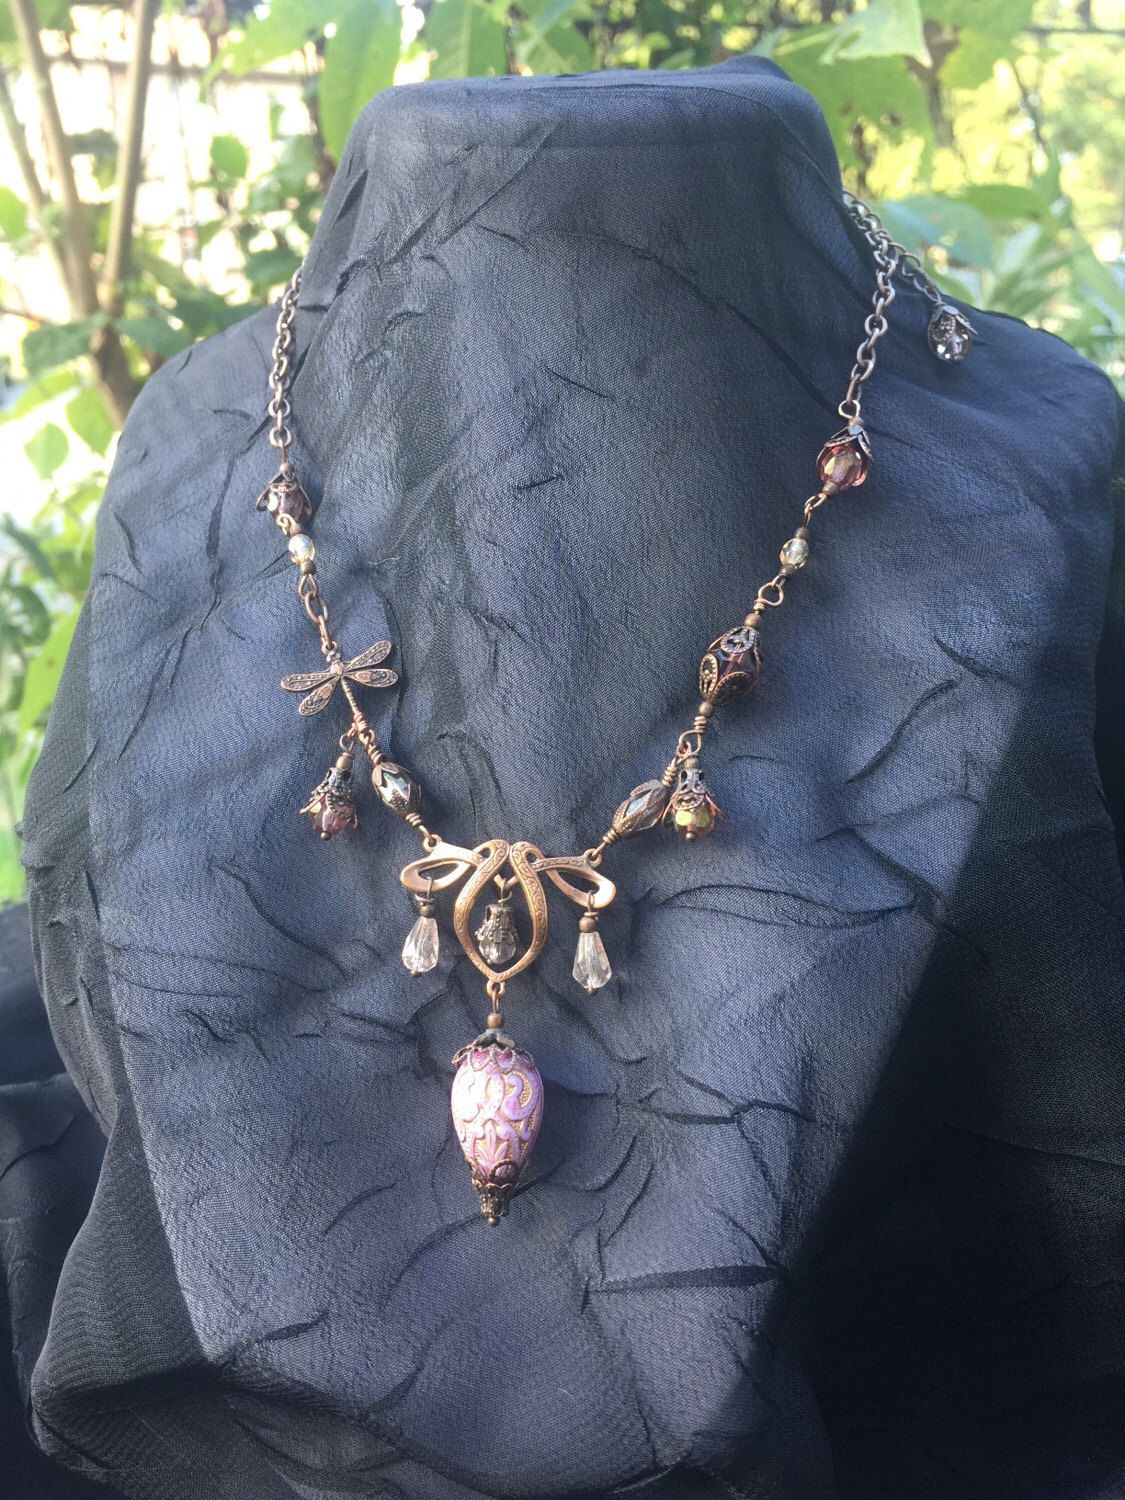 Steampunk Hot Air Balloon Dragonfly Copper Tone Necklace by AestheticAmbrosia on Etsy https://www.etsy.com/listing/249781544/steampunk-hot-air-balloon-dragonfly